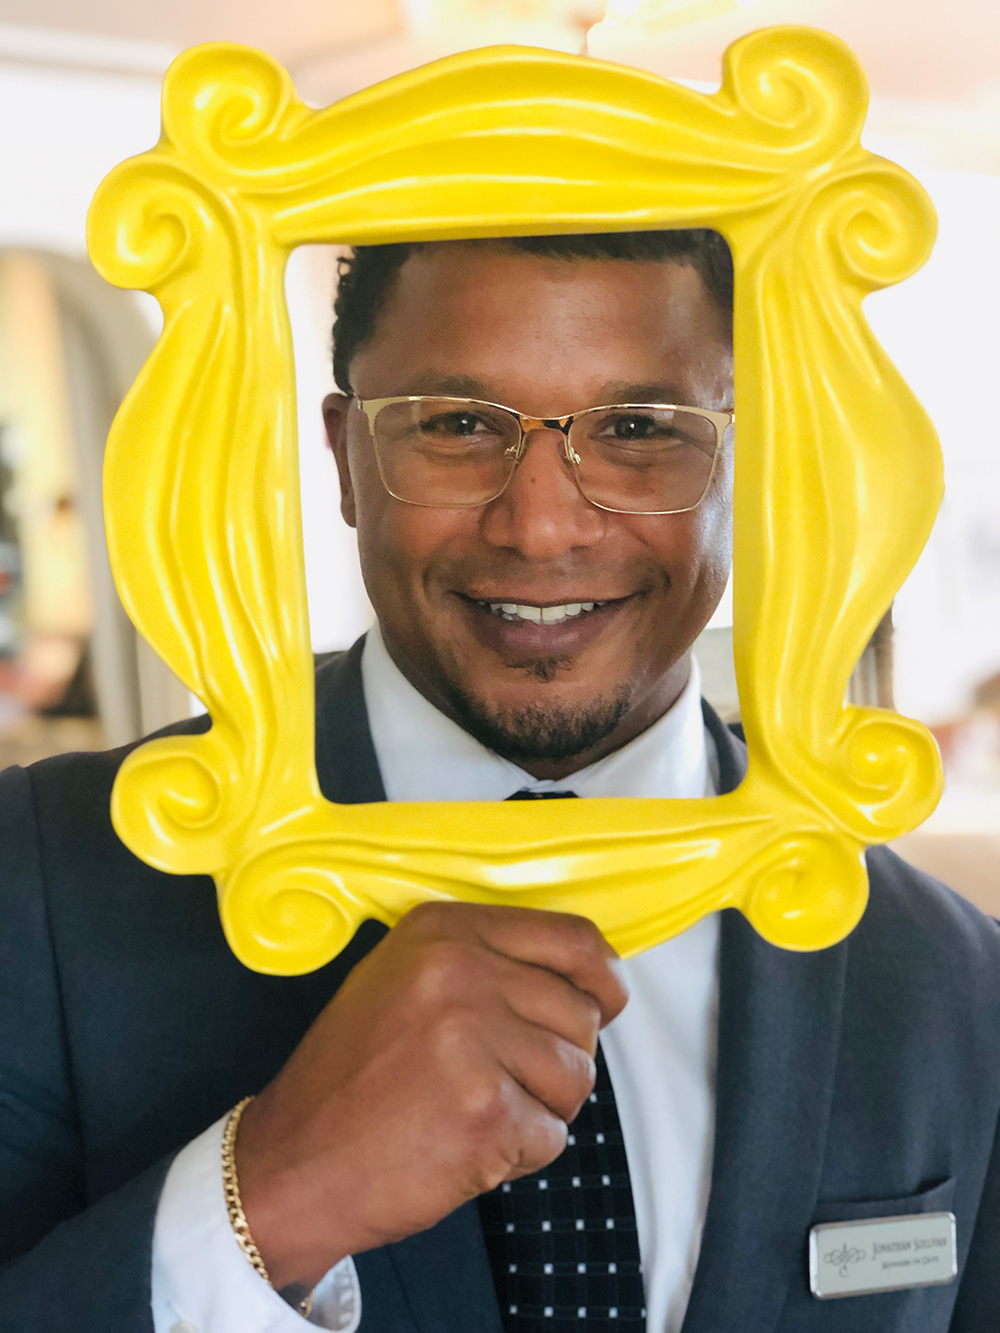 Restaurant Manager Jonathan using the picture frame from the hit television show  Friends .